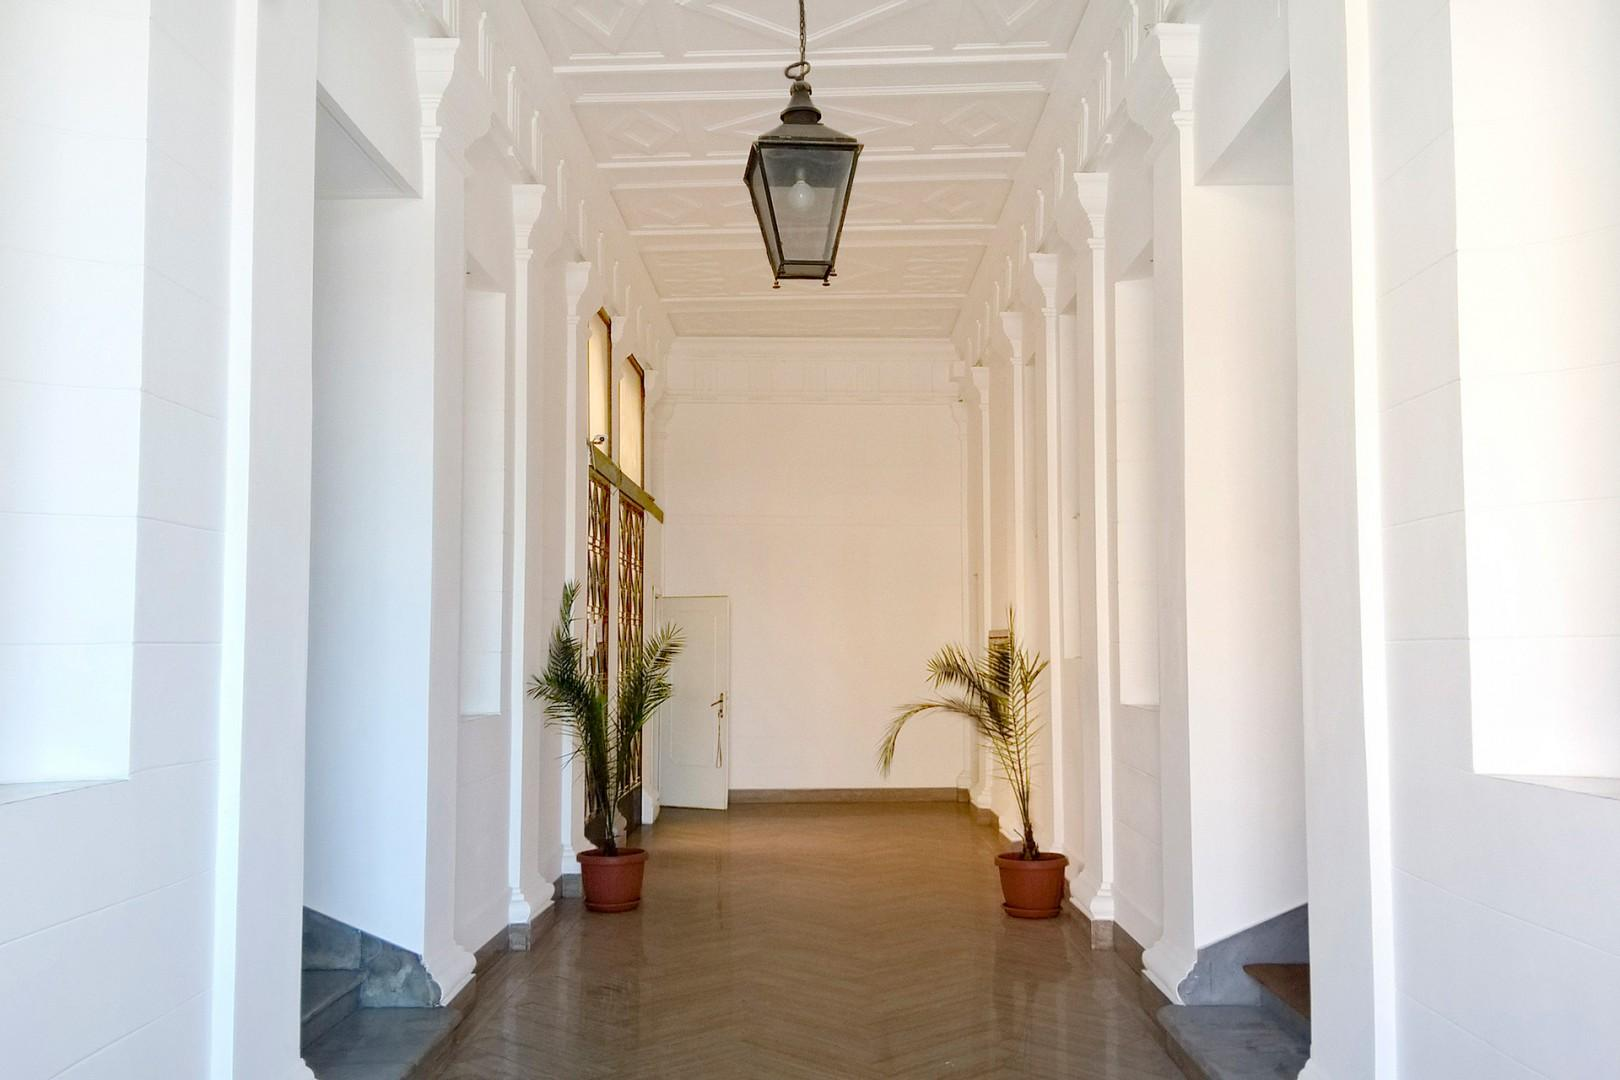 Downstairs entry hallway looking the other direction. It is clean and well maintained.